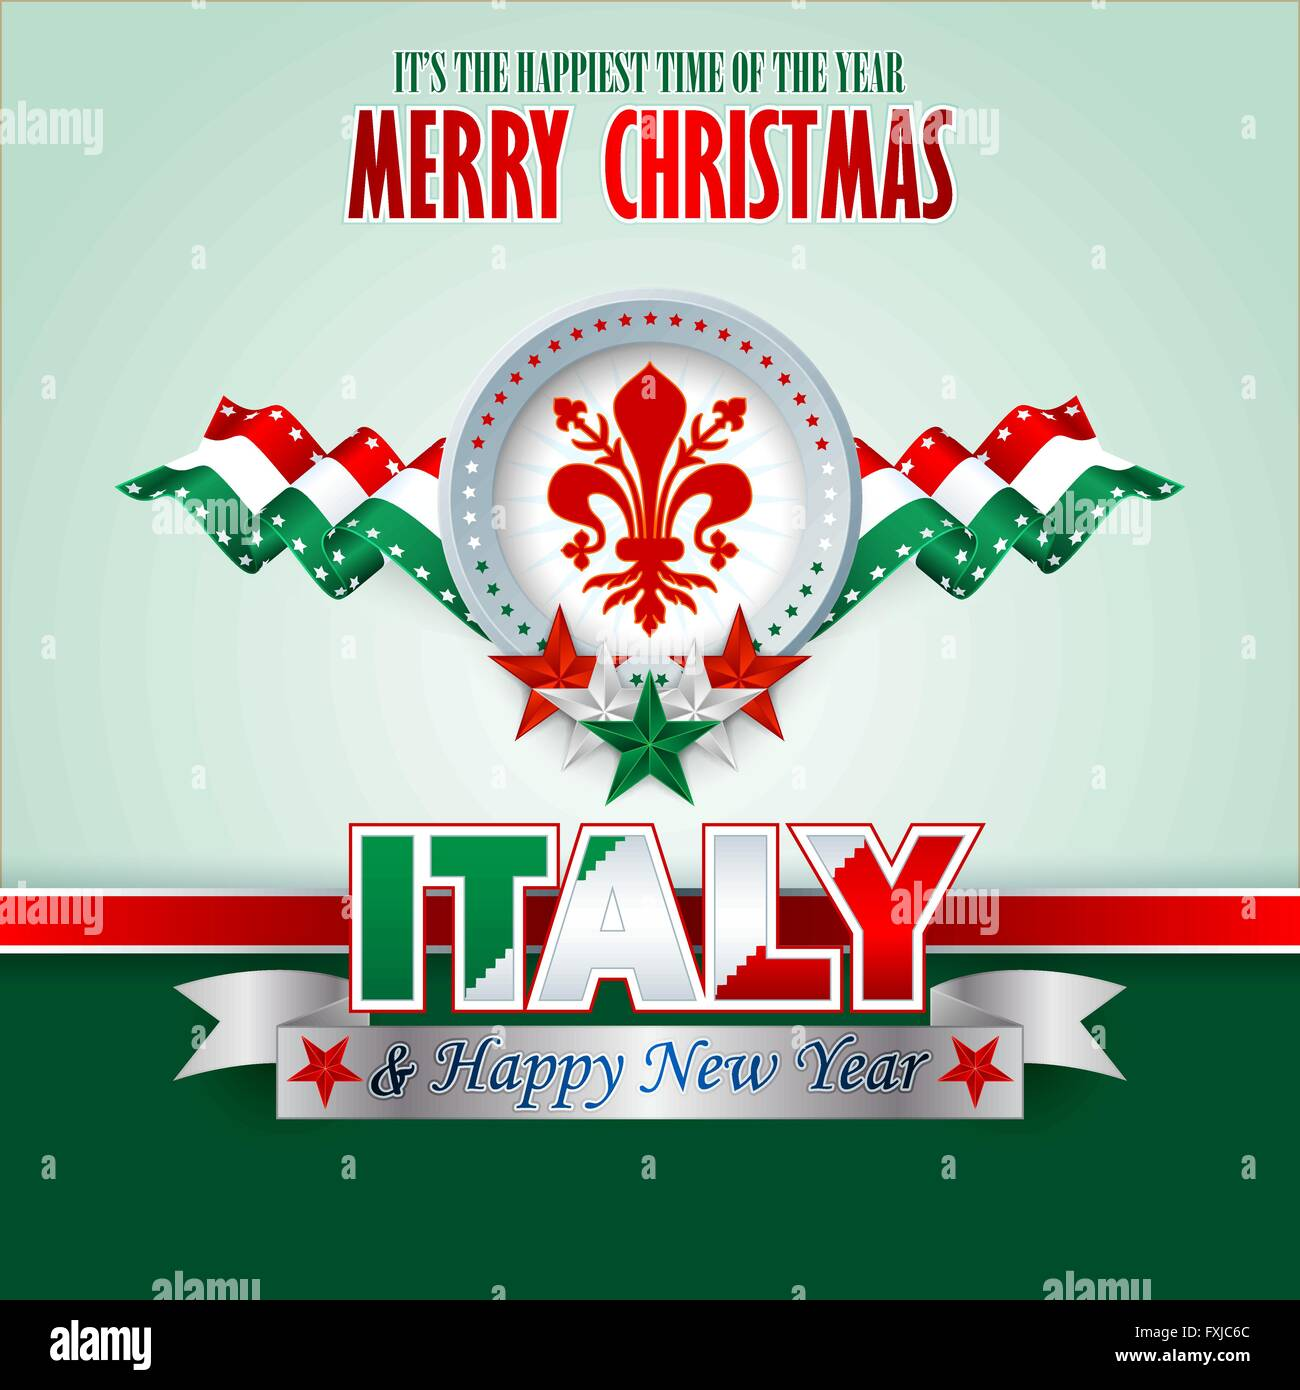 merry christmas background with florence coat of arms on national flag colors for italian christmas